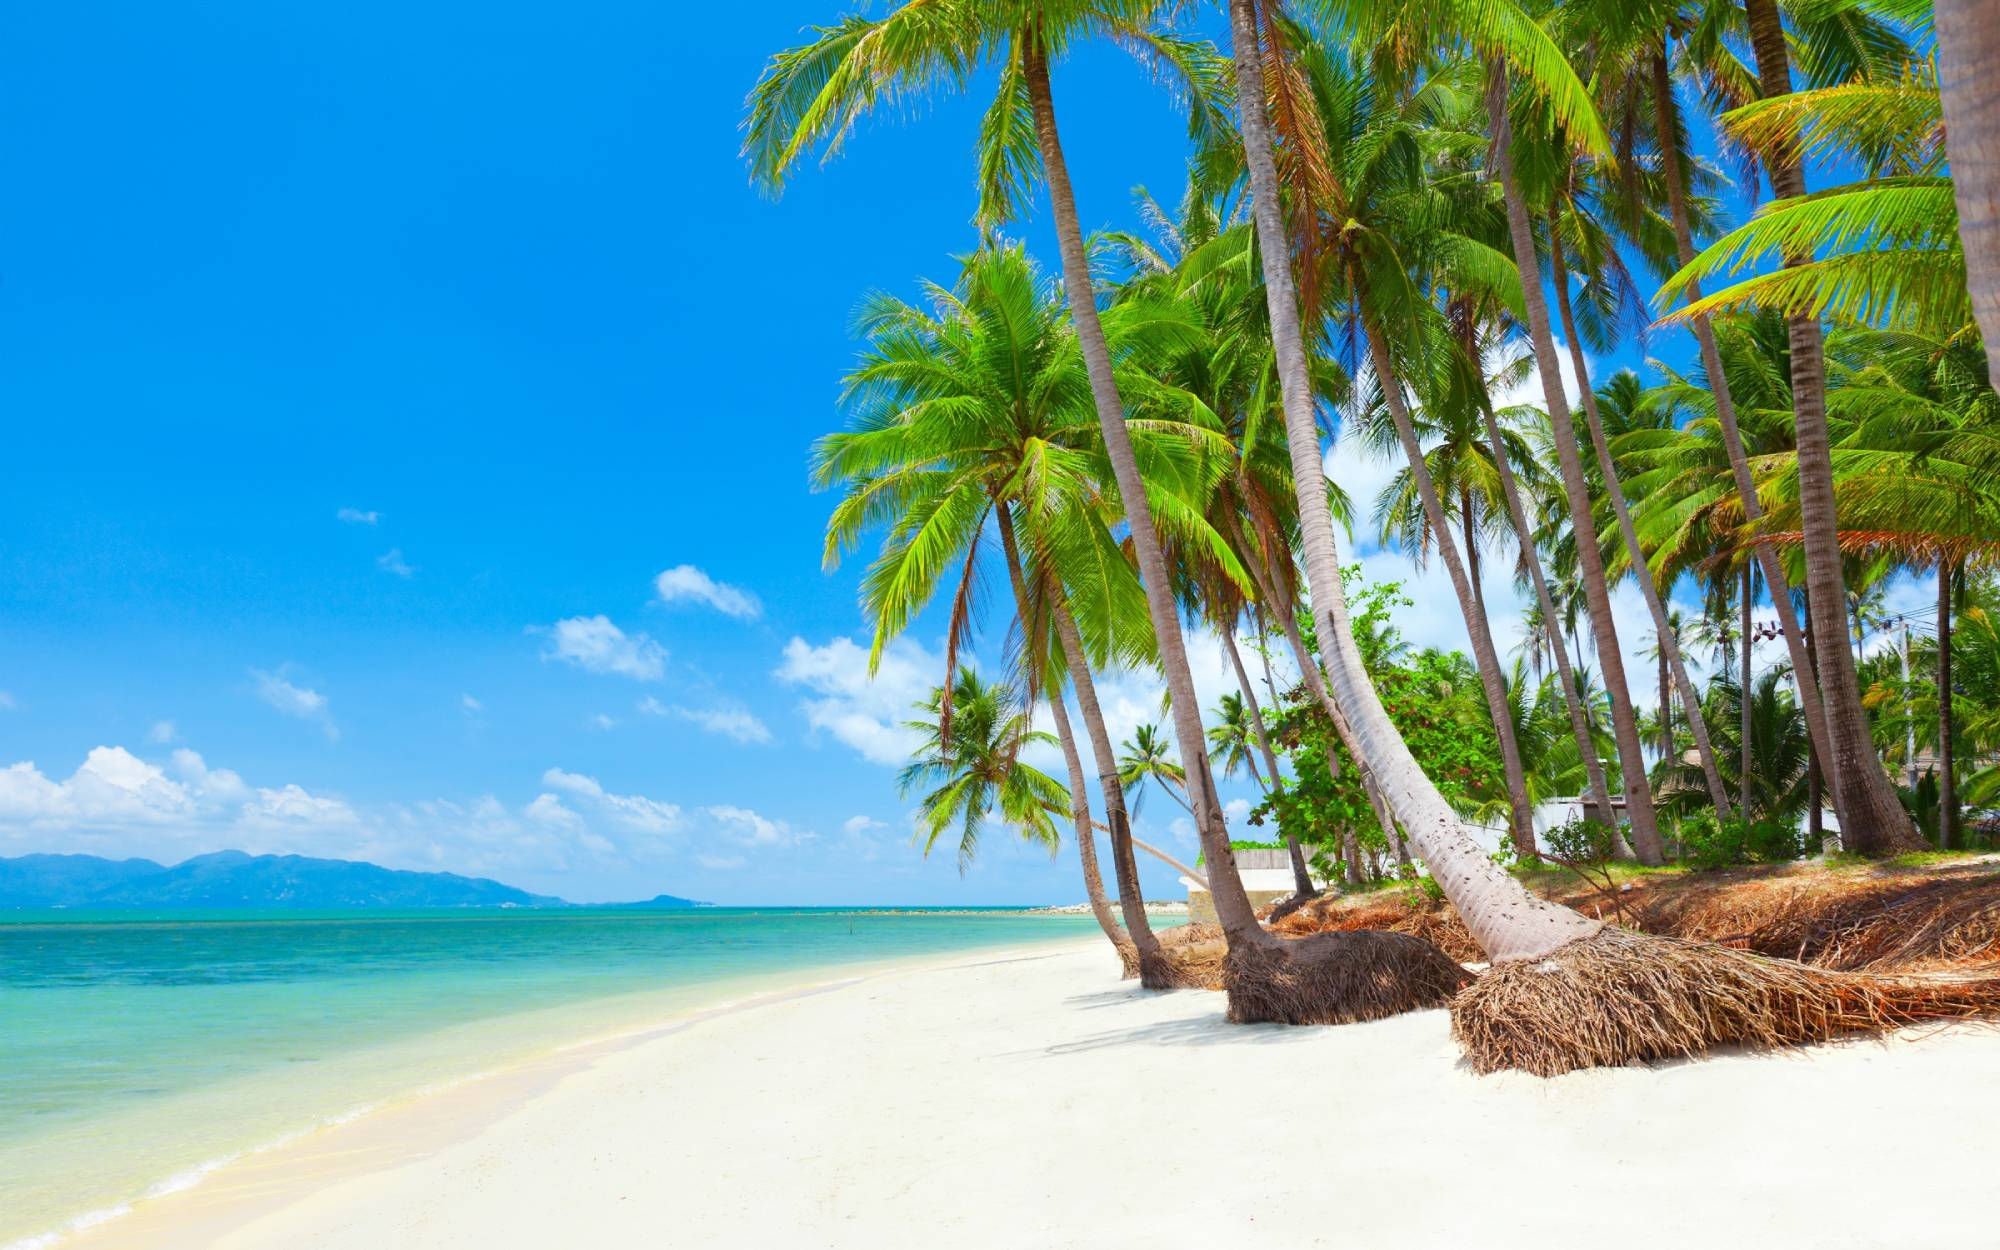 The Best Things To Do In Koh Samui